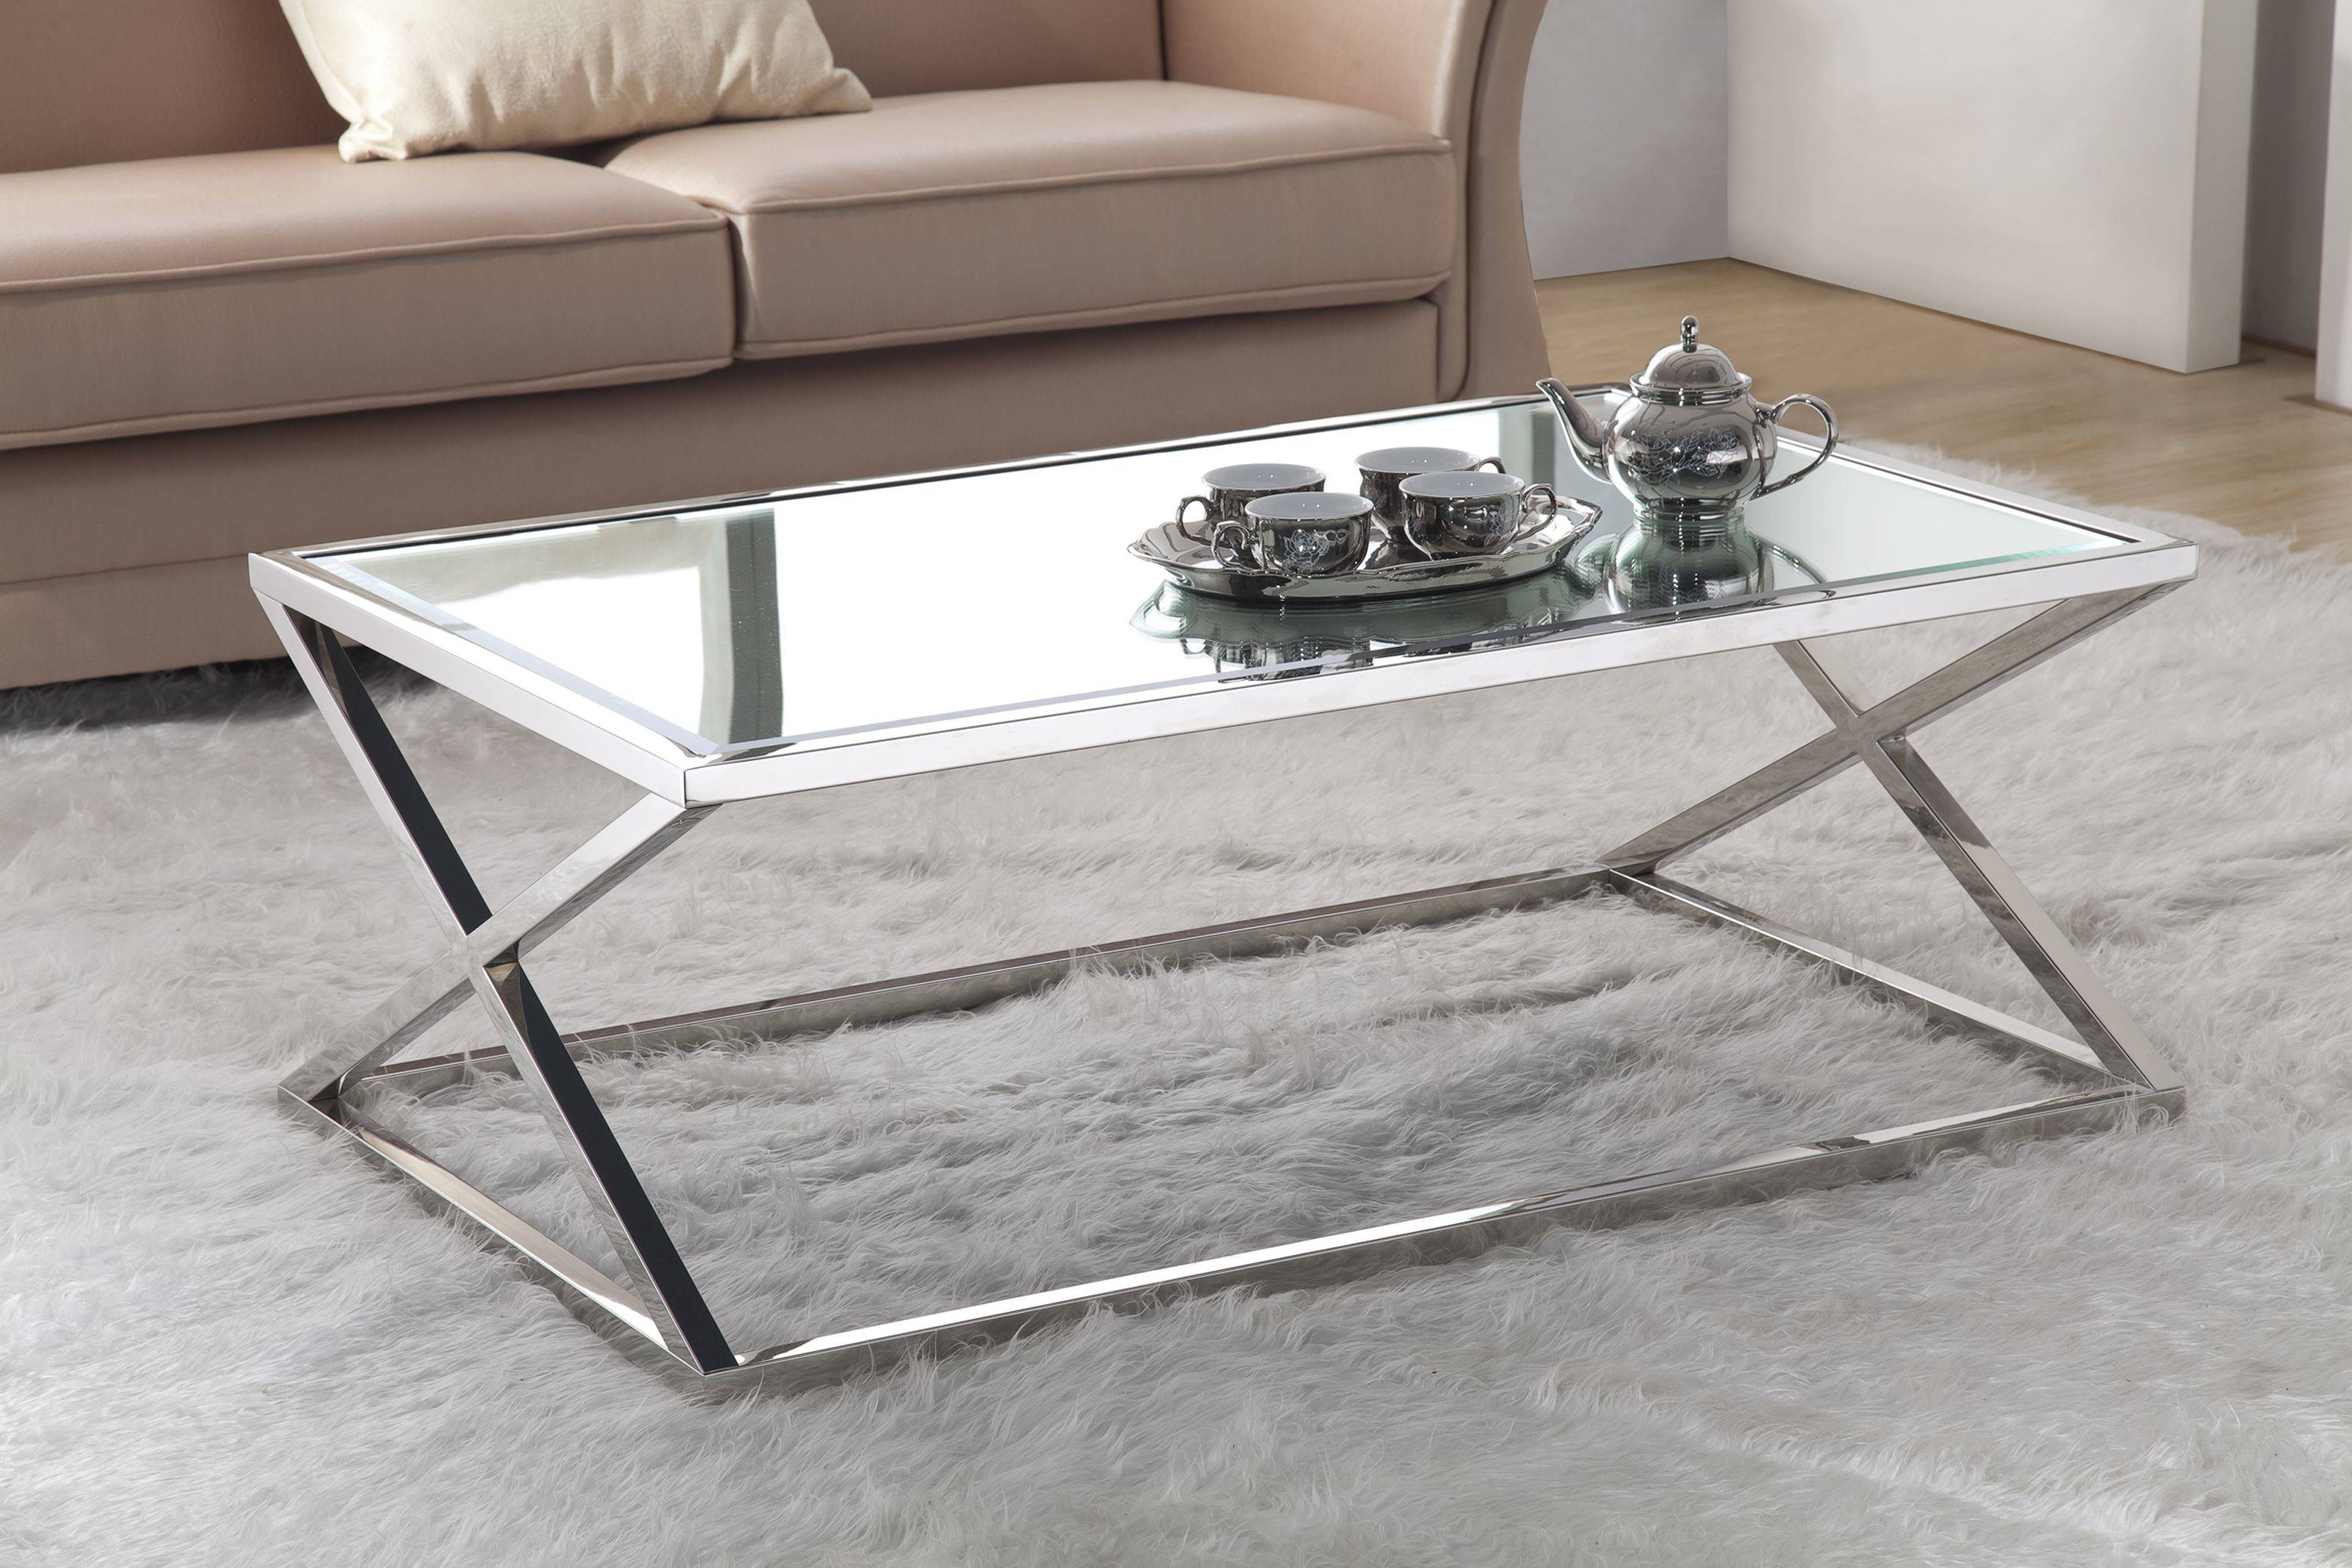 Stainless Steel Coffee Table Cross Legs Base Type Chrome Finish Inside Steel And Glass Coffee Tables (View 26 of 30)